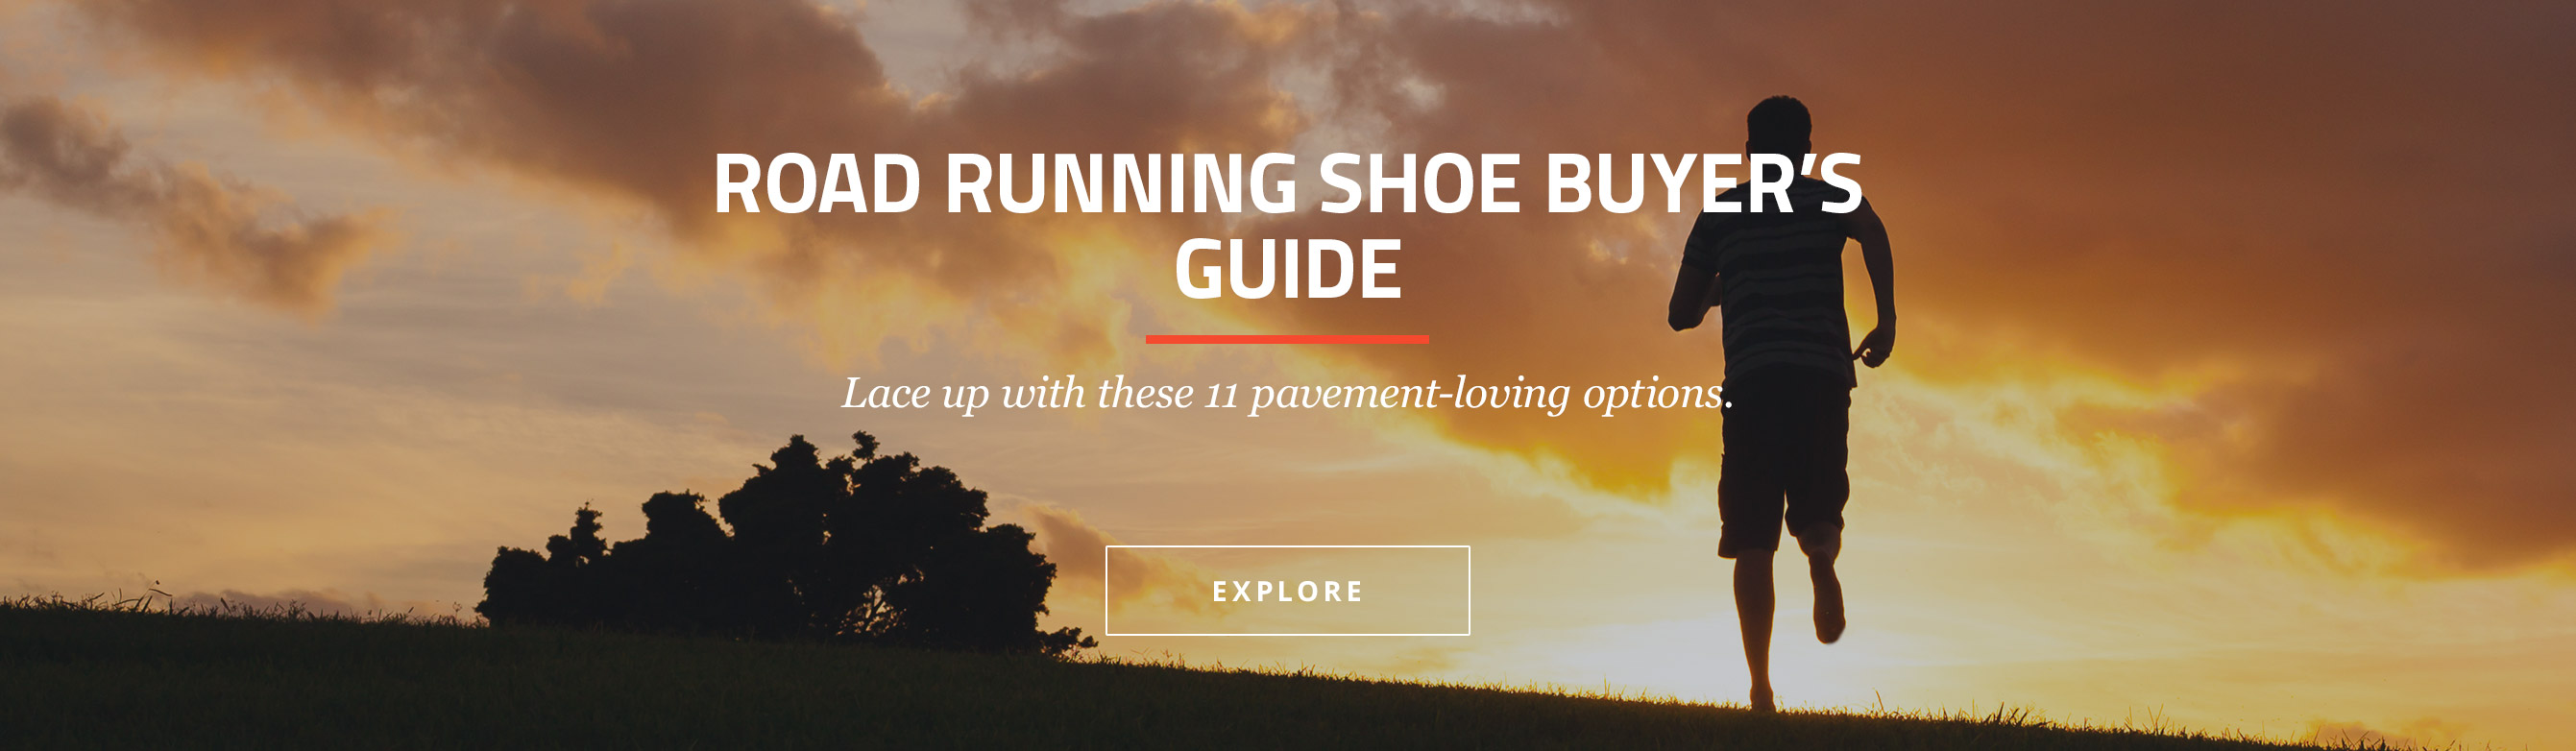 Road Running Shoes Buyer's Guide